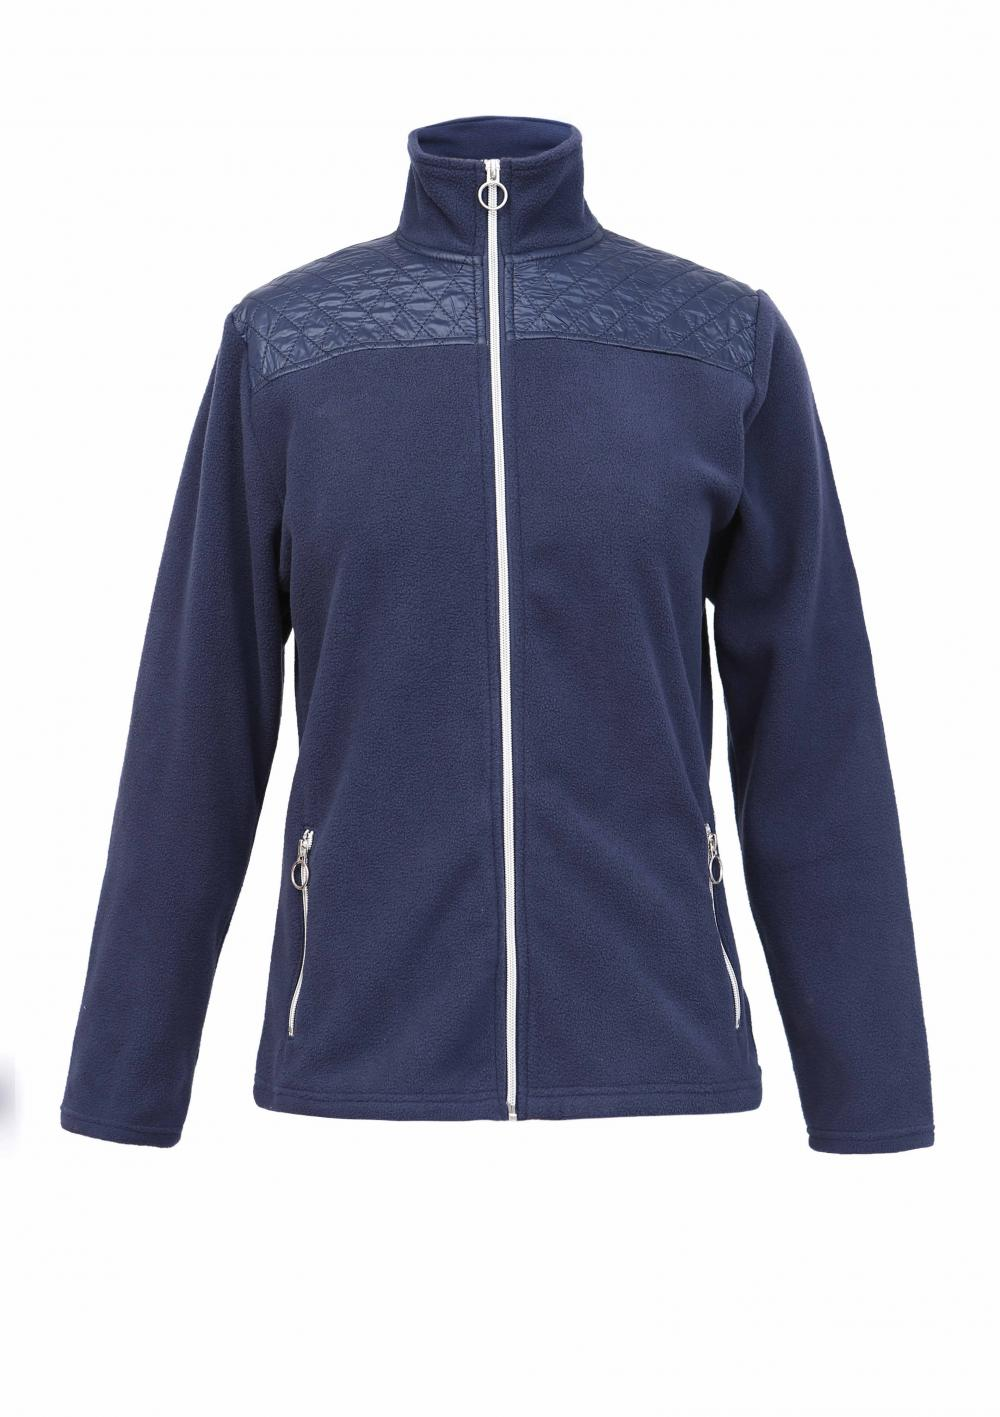 Ladies zip through jacket